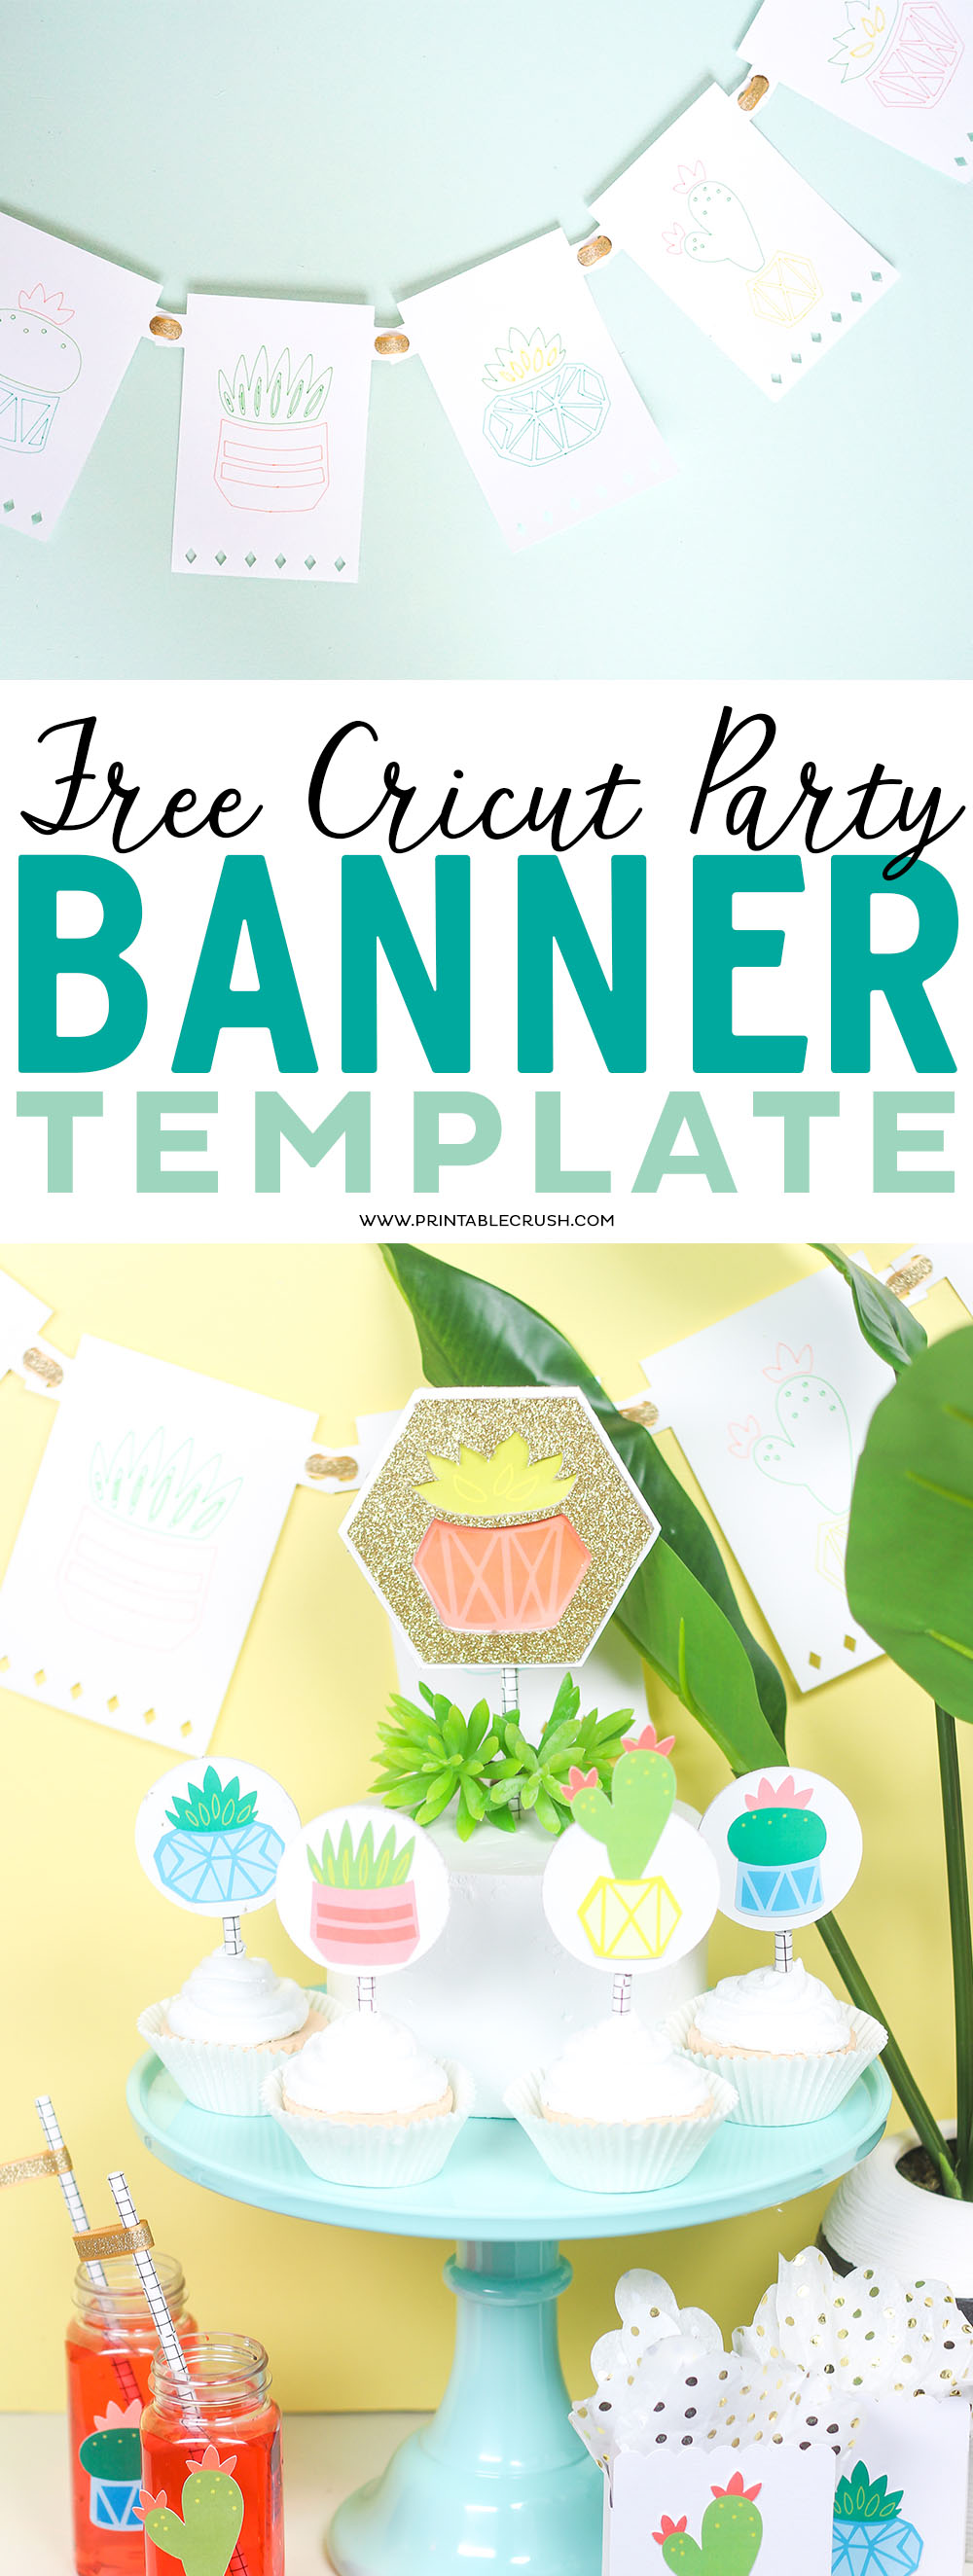 Free Cricut Party Banner Template